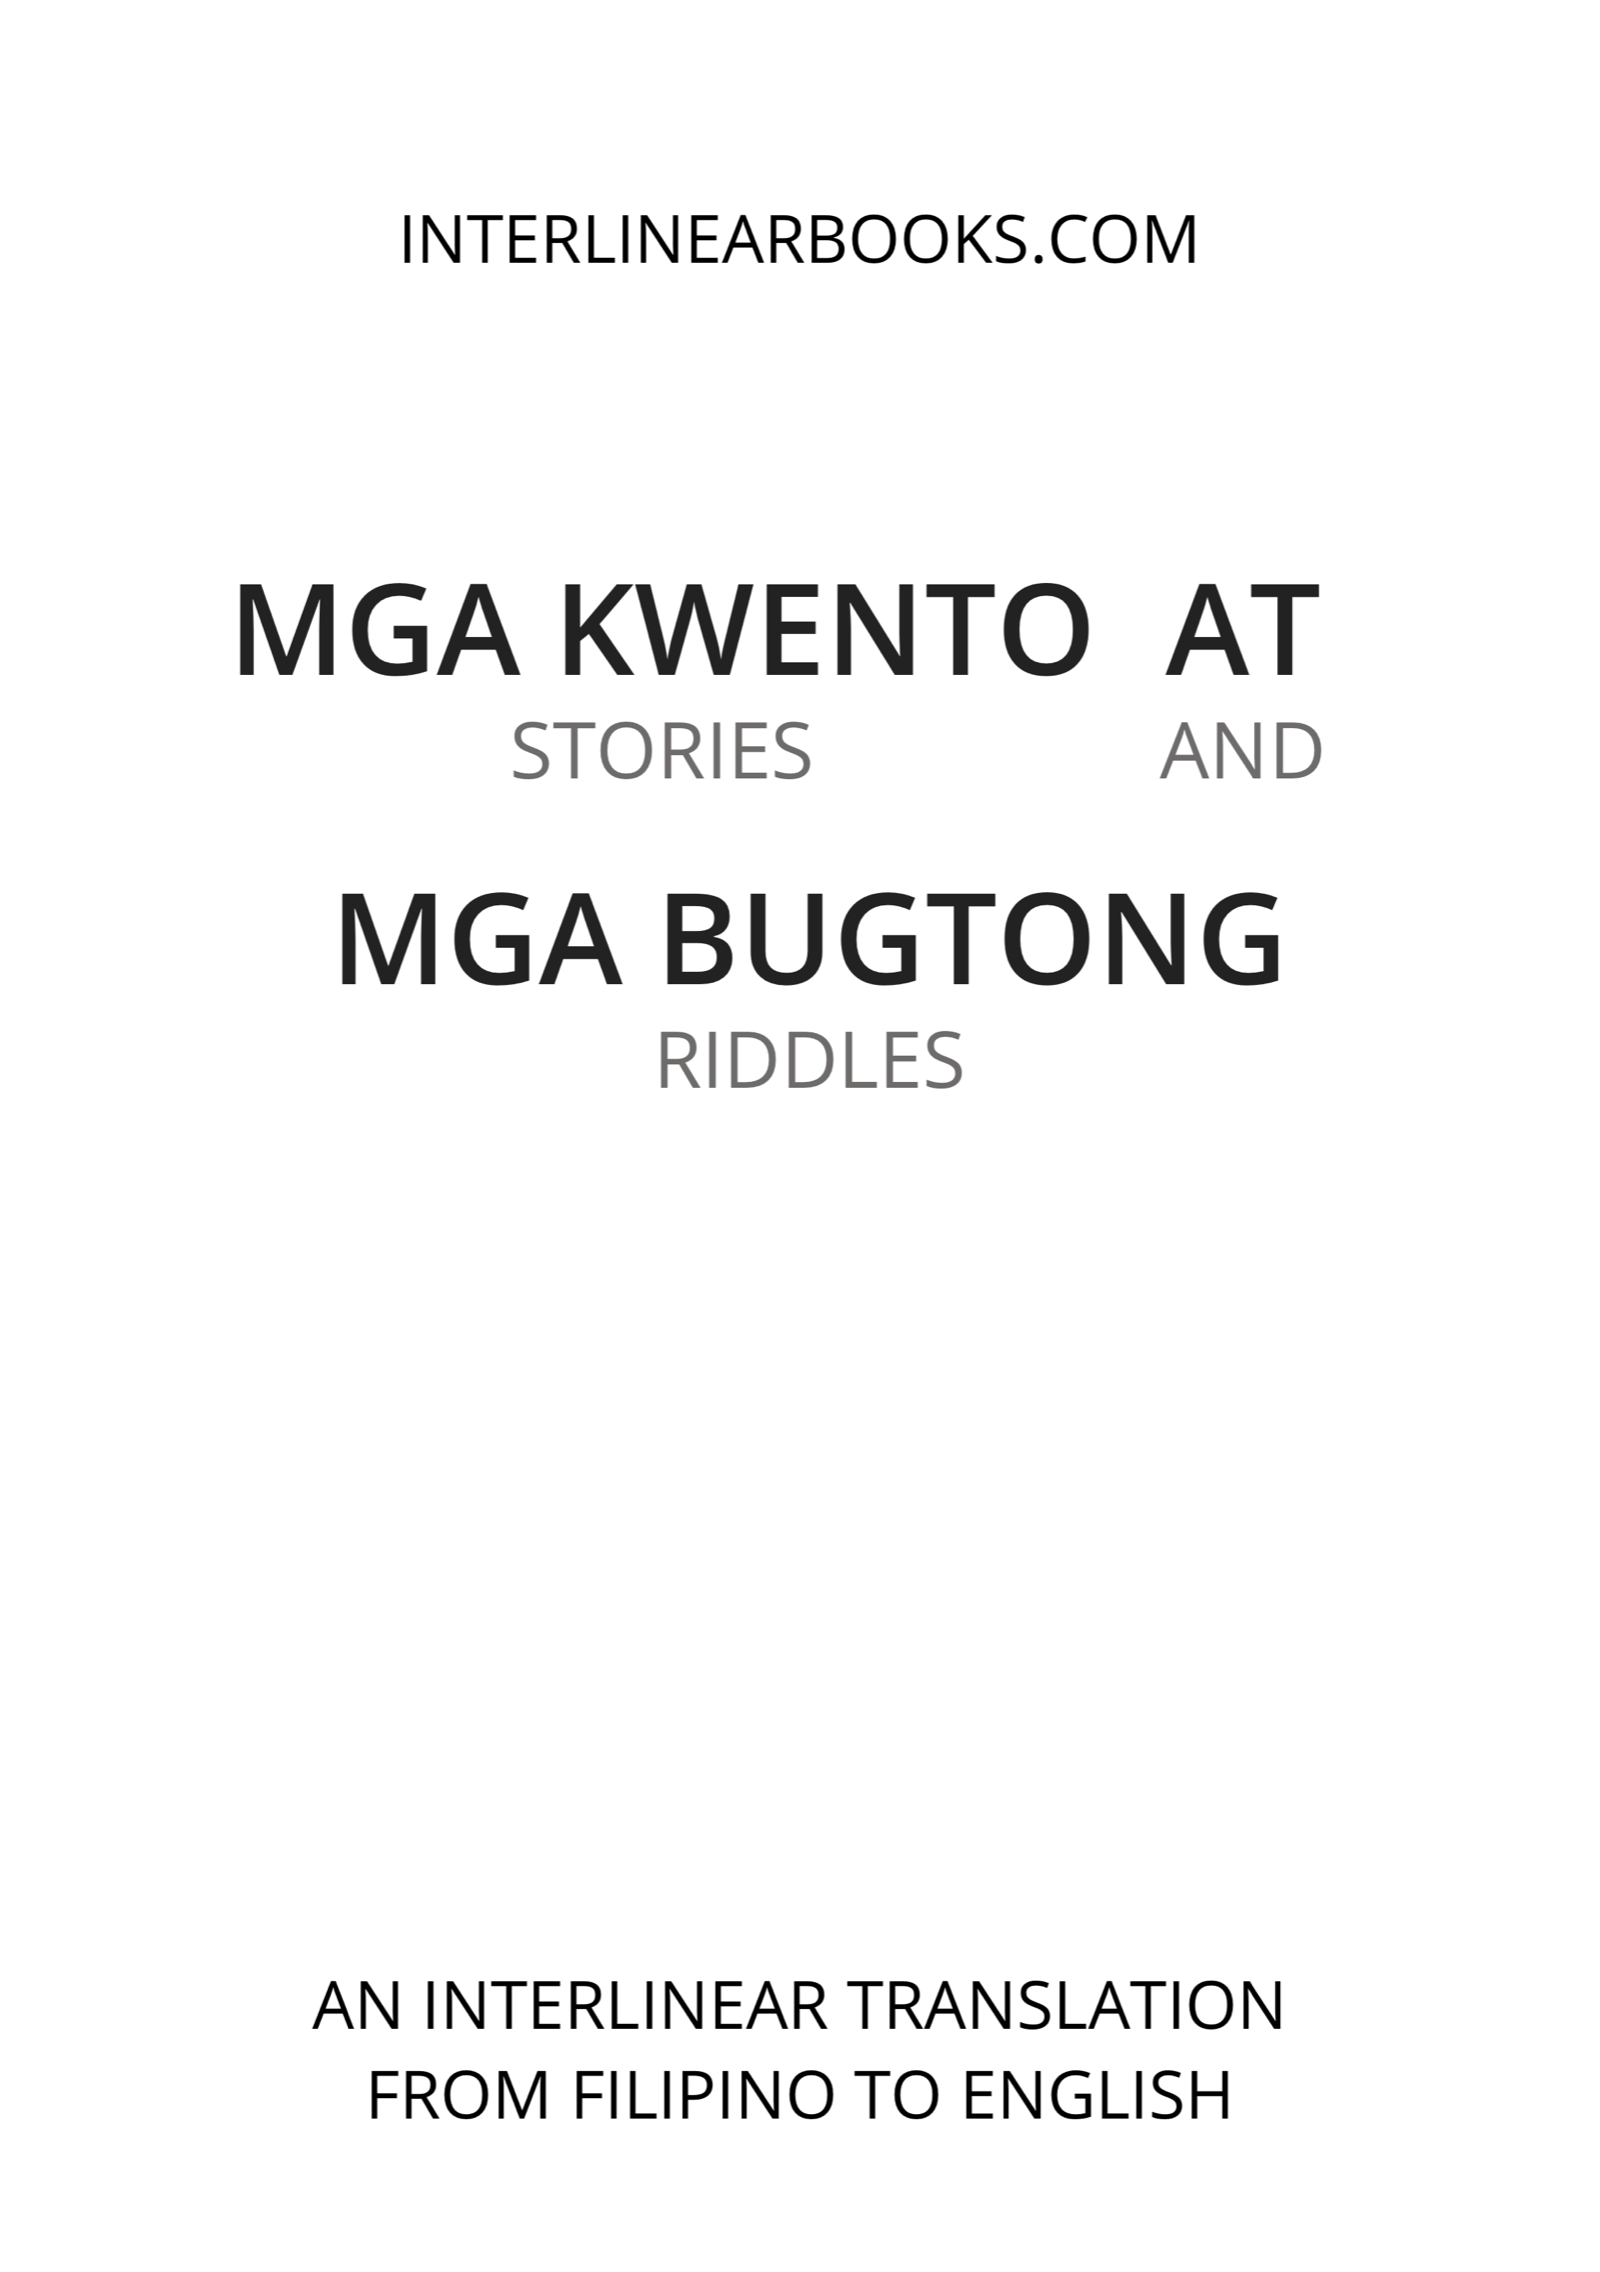 Filipino book: Mga Kwento at Mga Bugtong / Stories and Riddles